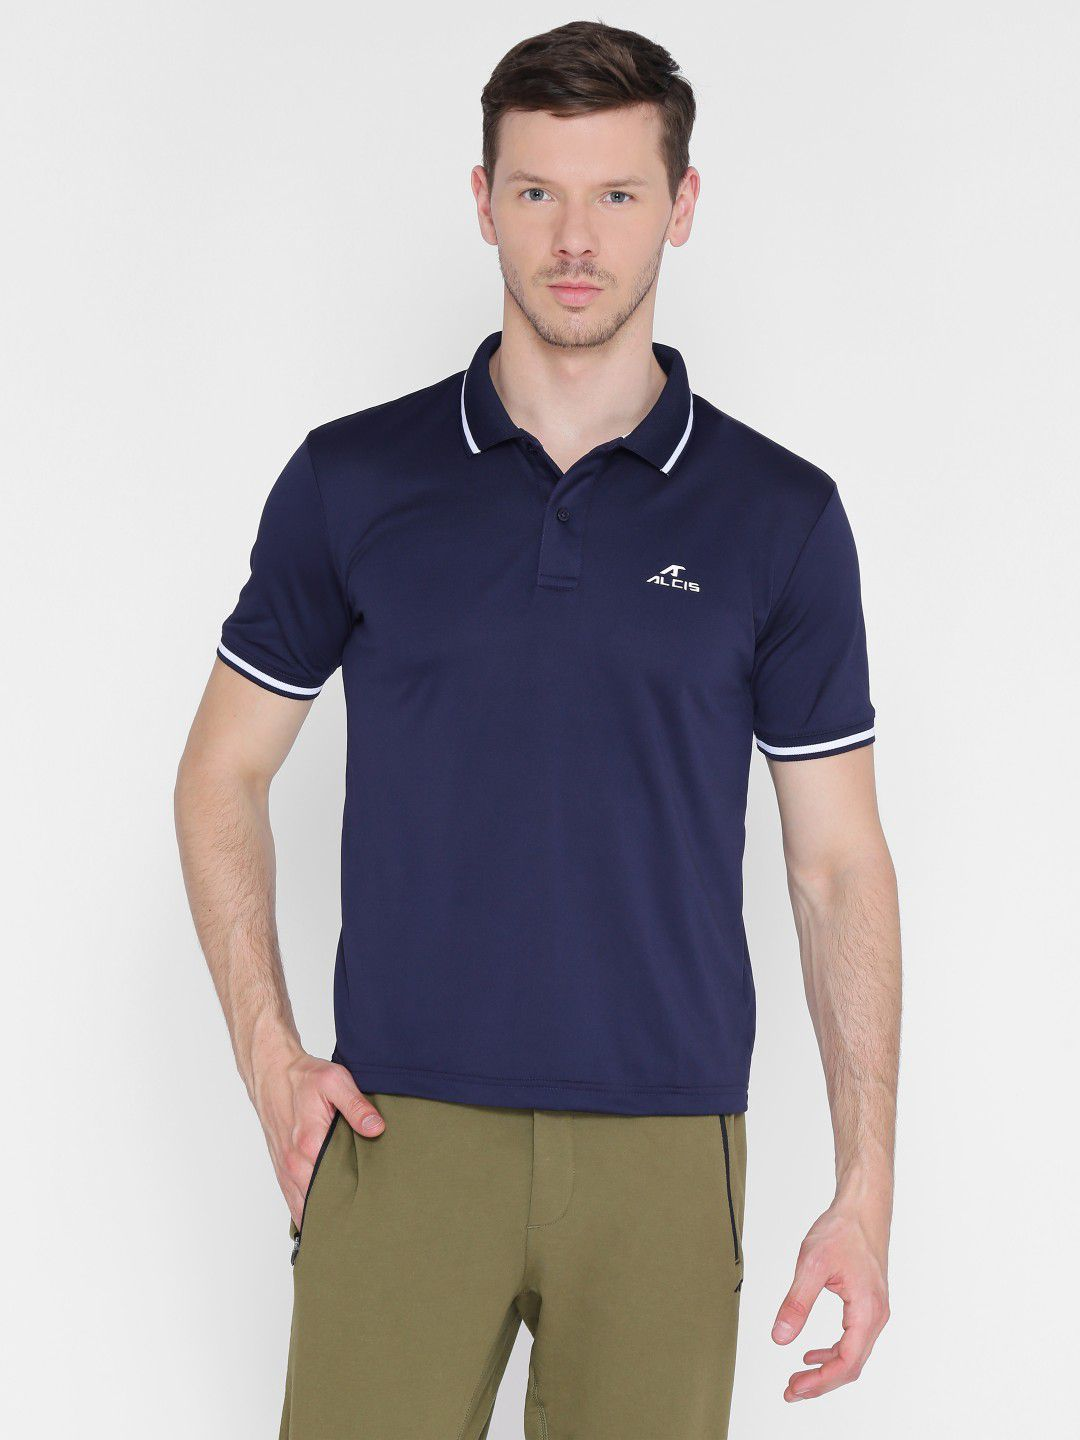 Alcis Mens Solid Navy Blue Polo T-Shirt